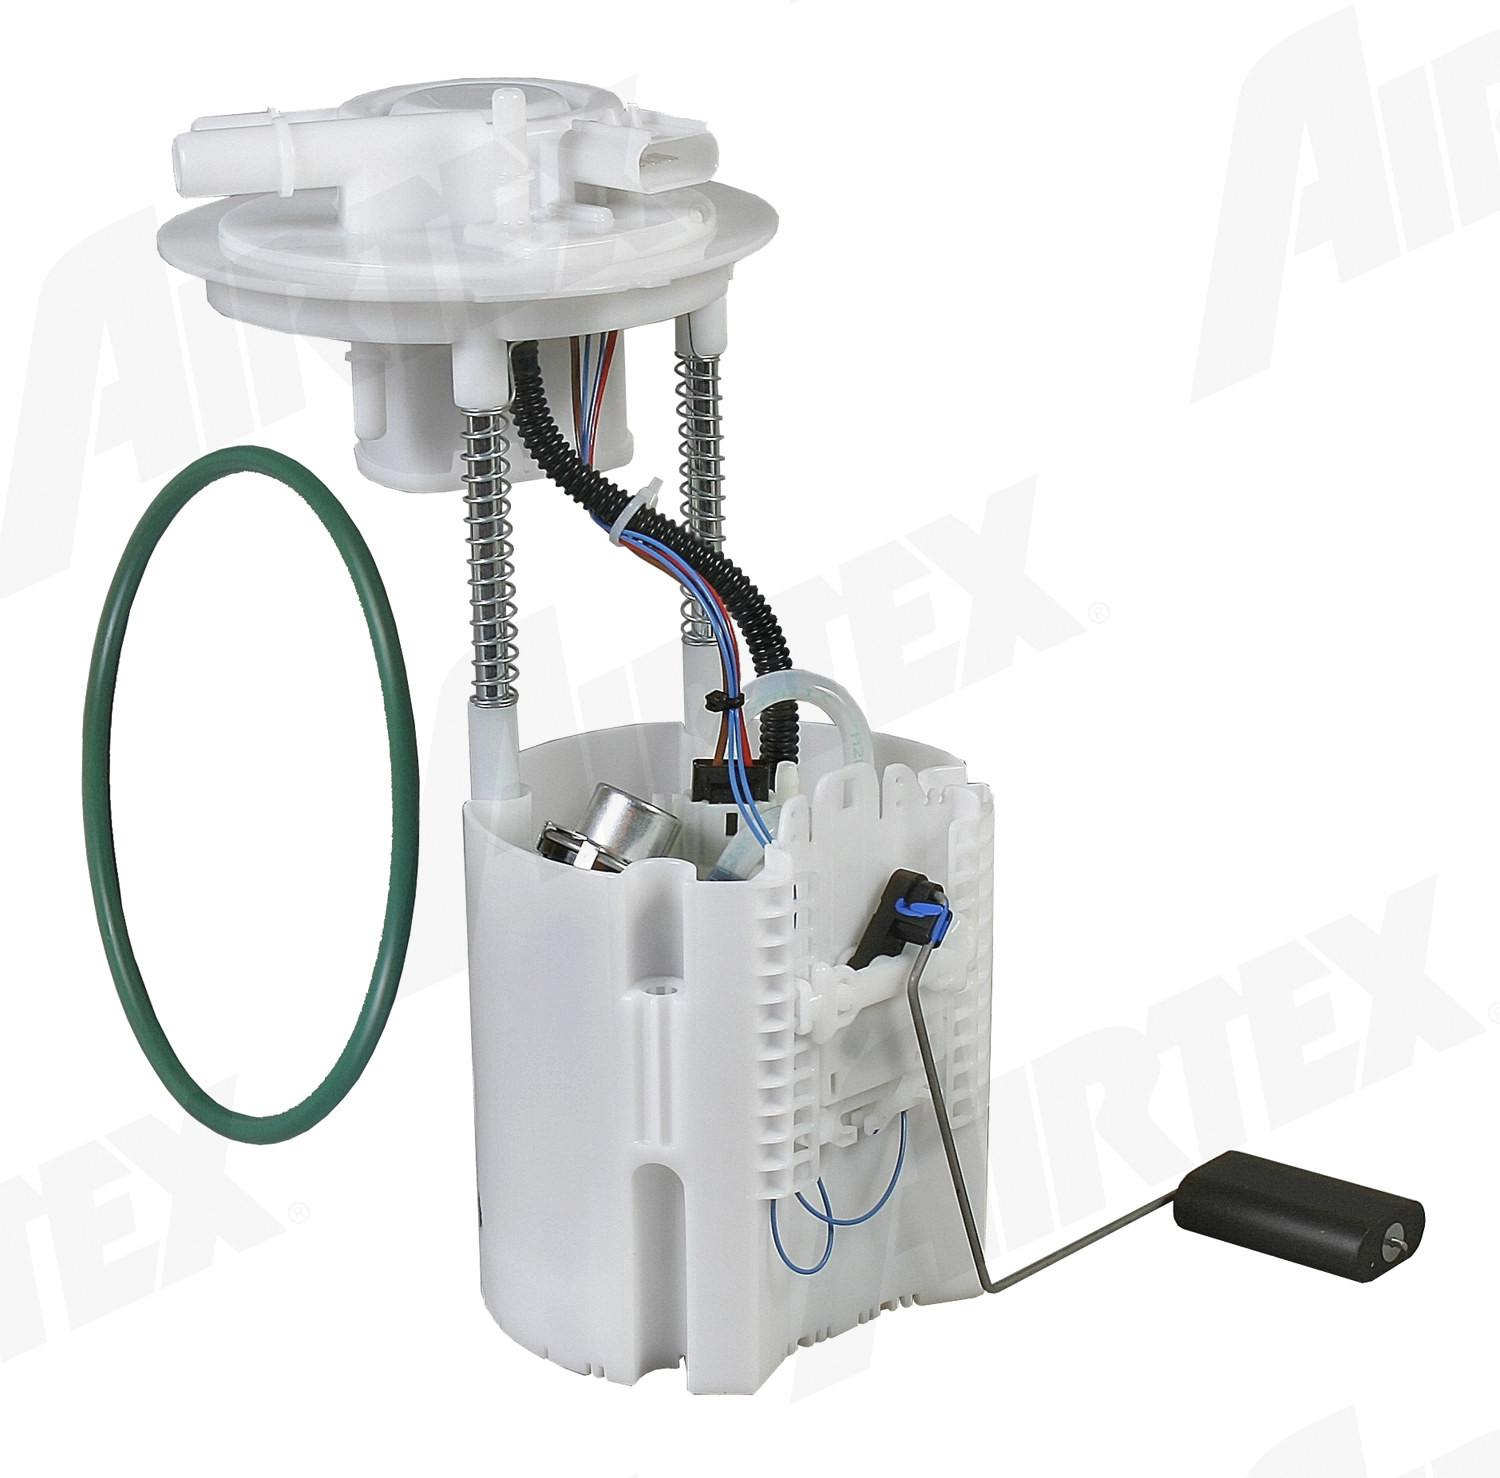 Fuel Pumps And Tanks Parts Listing For Dodge M300 Filter Airtex Automotive Division Pump Module Assembly Atn E7280m